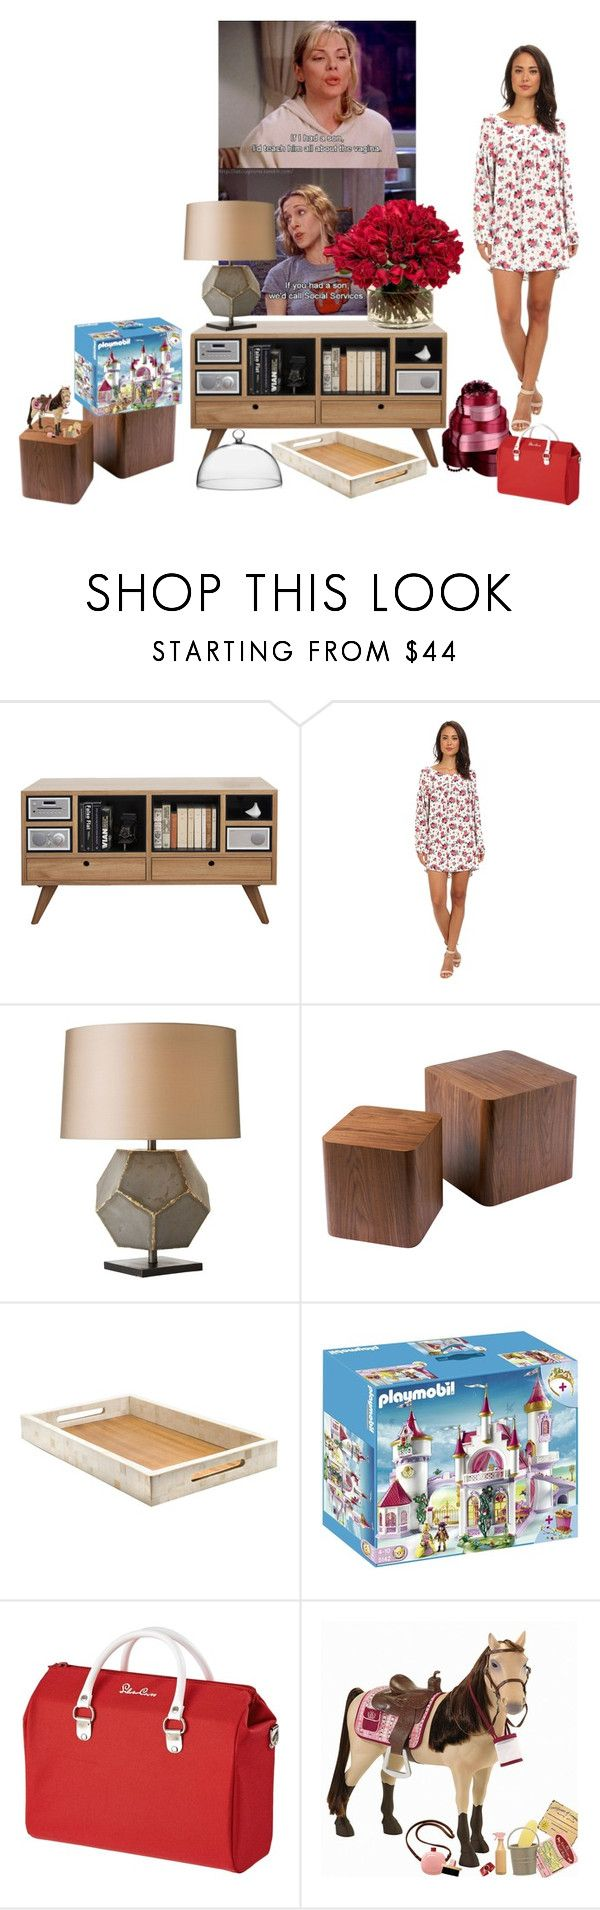 """""""Join & Enjoy My Group Contests"""" by didesi ❤ liked on Polyvore featuring interior, interiors, interior design, home, home decor, interior decorating, The Hansen Family, T-Bags Los Angeles, Arteriors and PLAYMOBIL"""